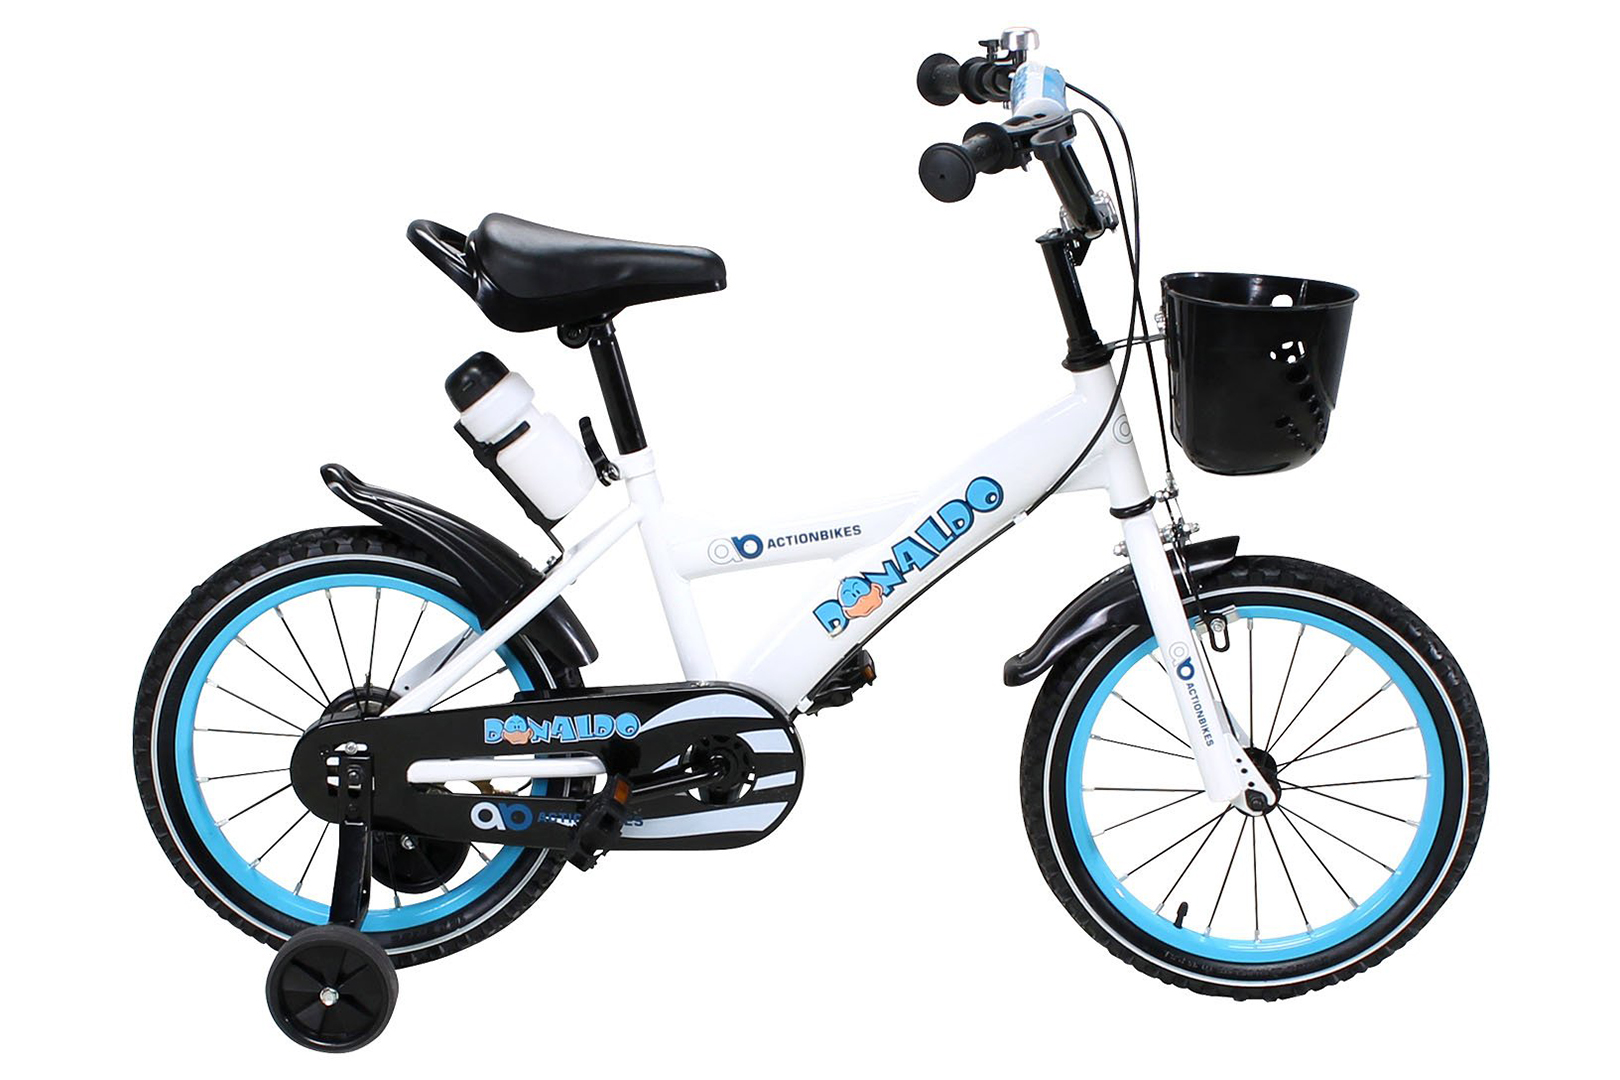 kinderfahrrad actionbikes 16 zoll kinder fahrrad rad bike m dchen jungen 12 14 ebay. Black Bedroom Furniture Sets. Home Design Ideas